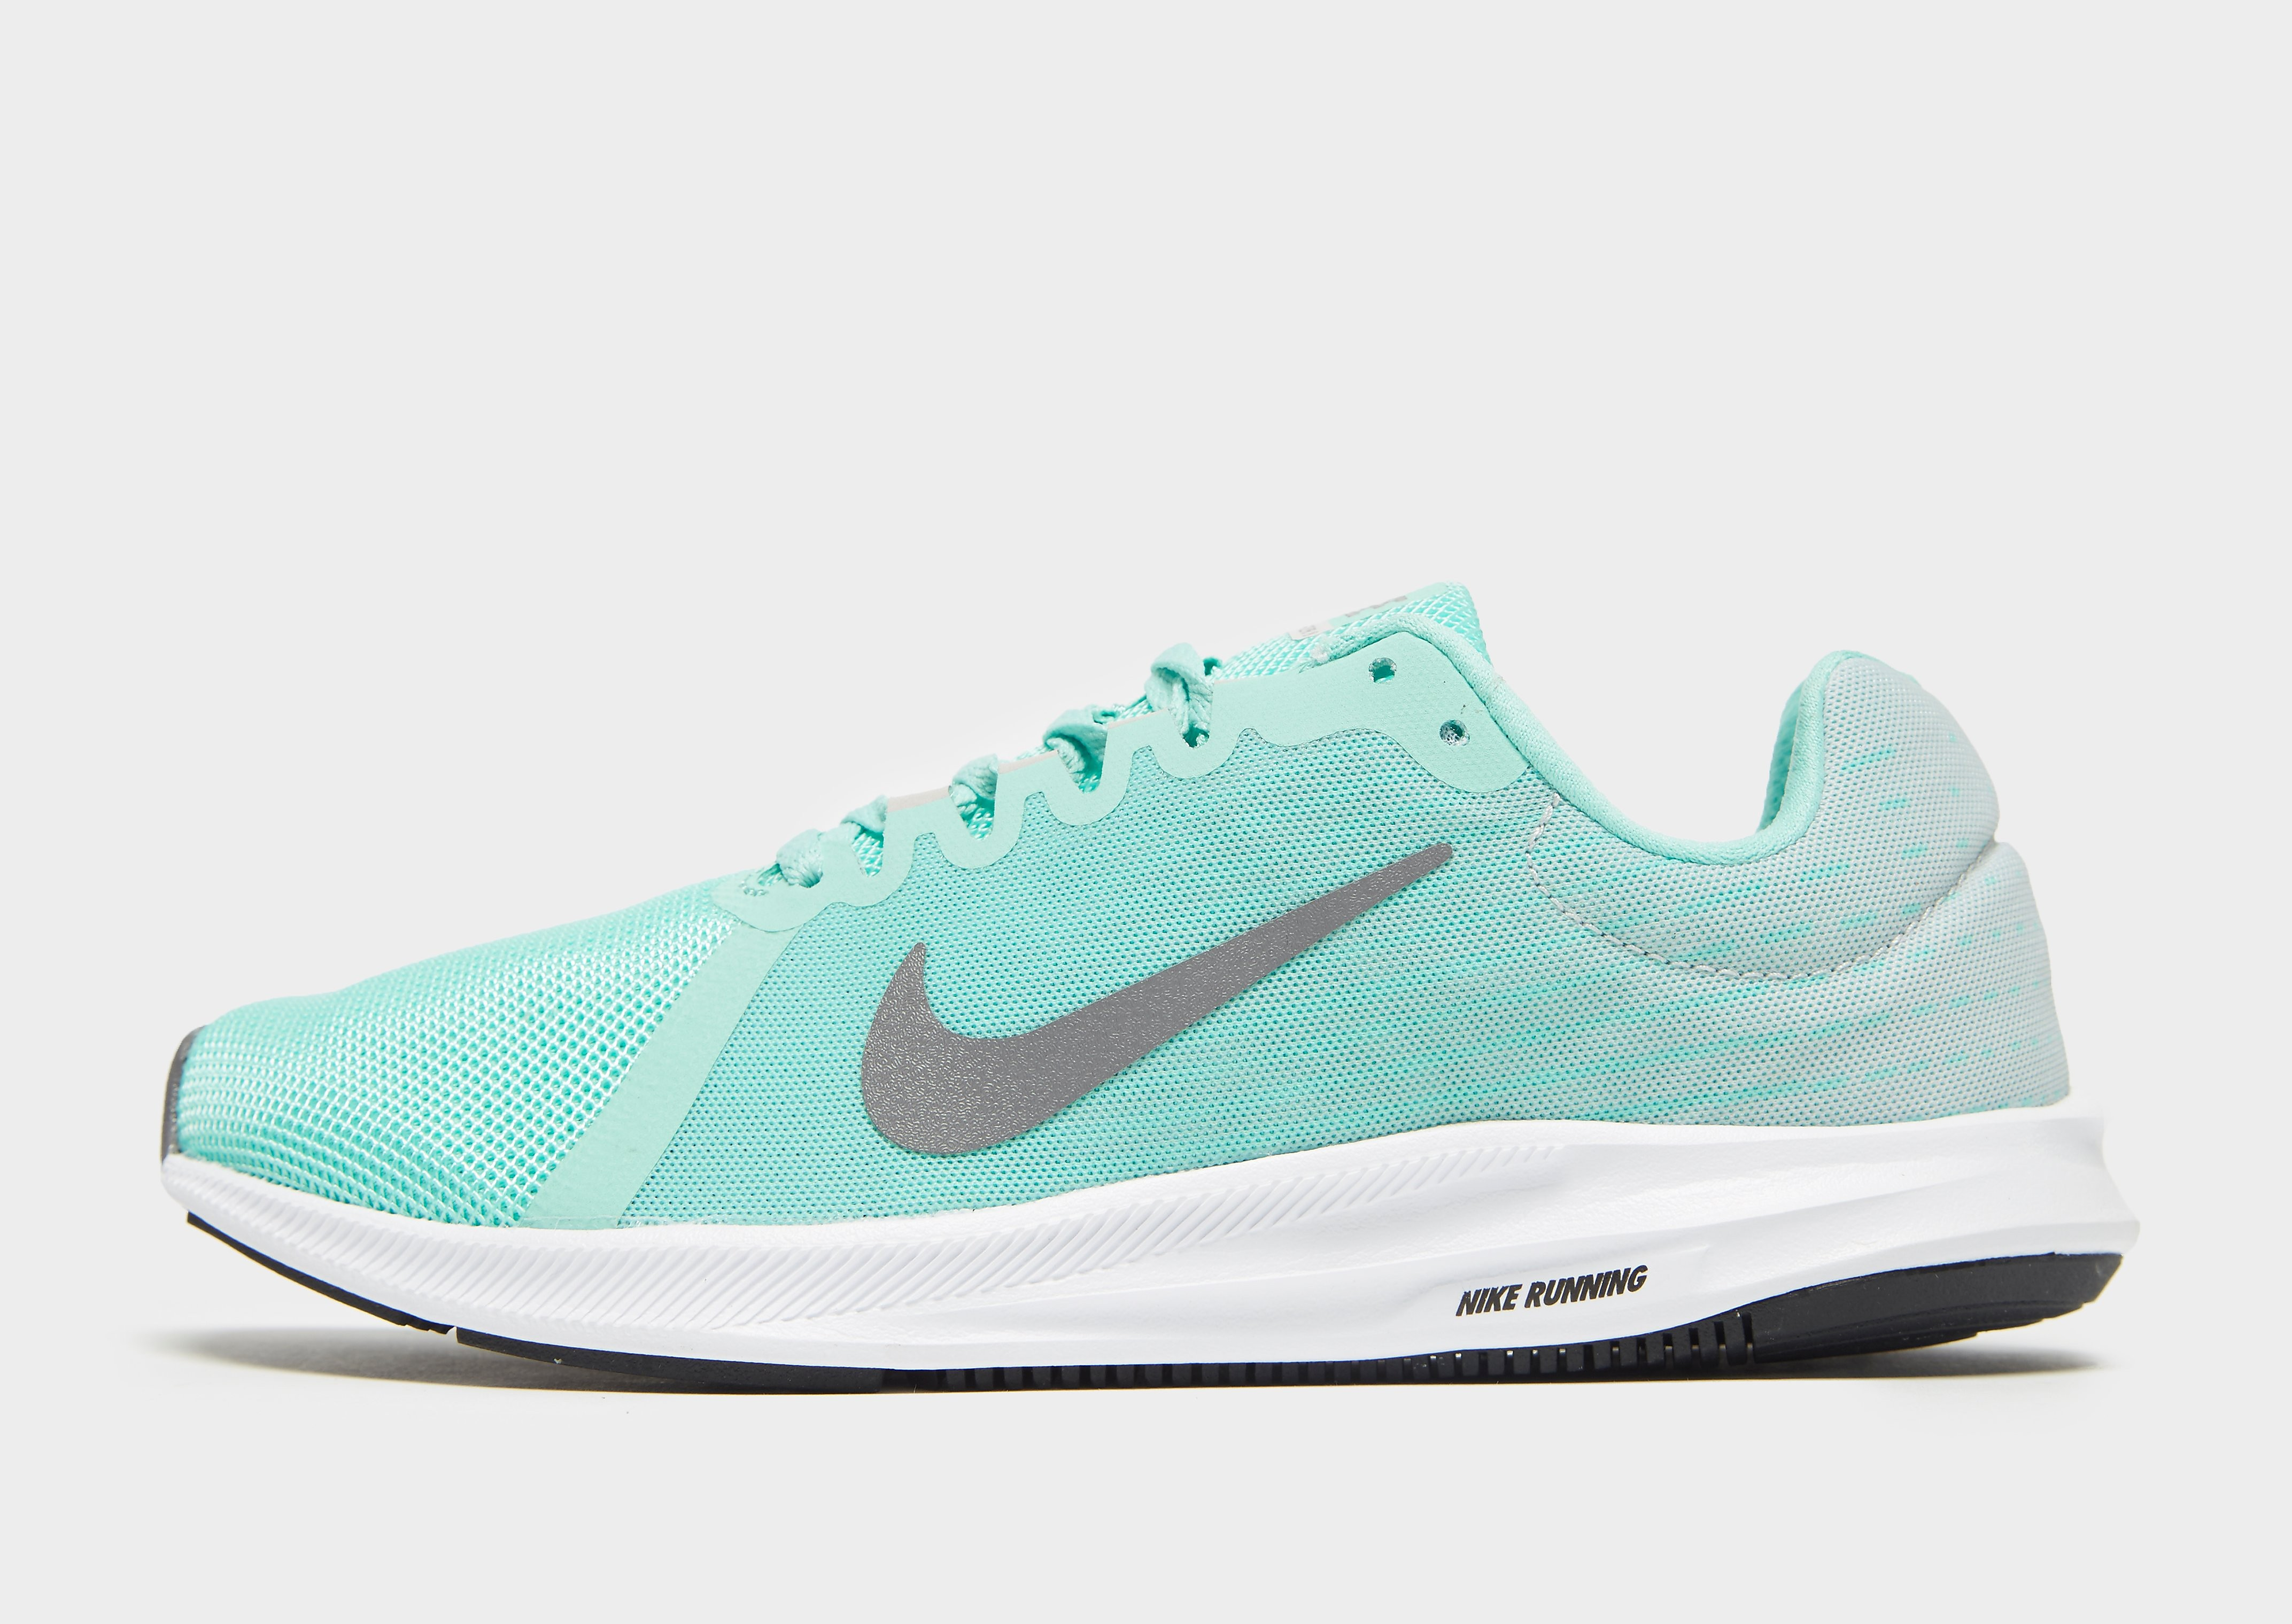 Nike Downshifter 8 Women's